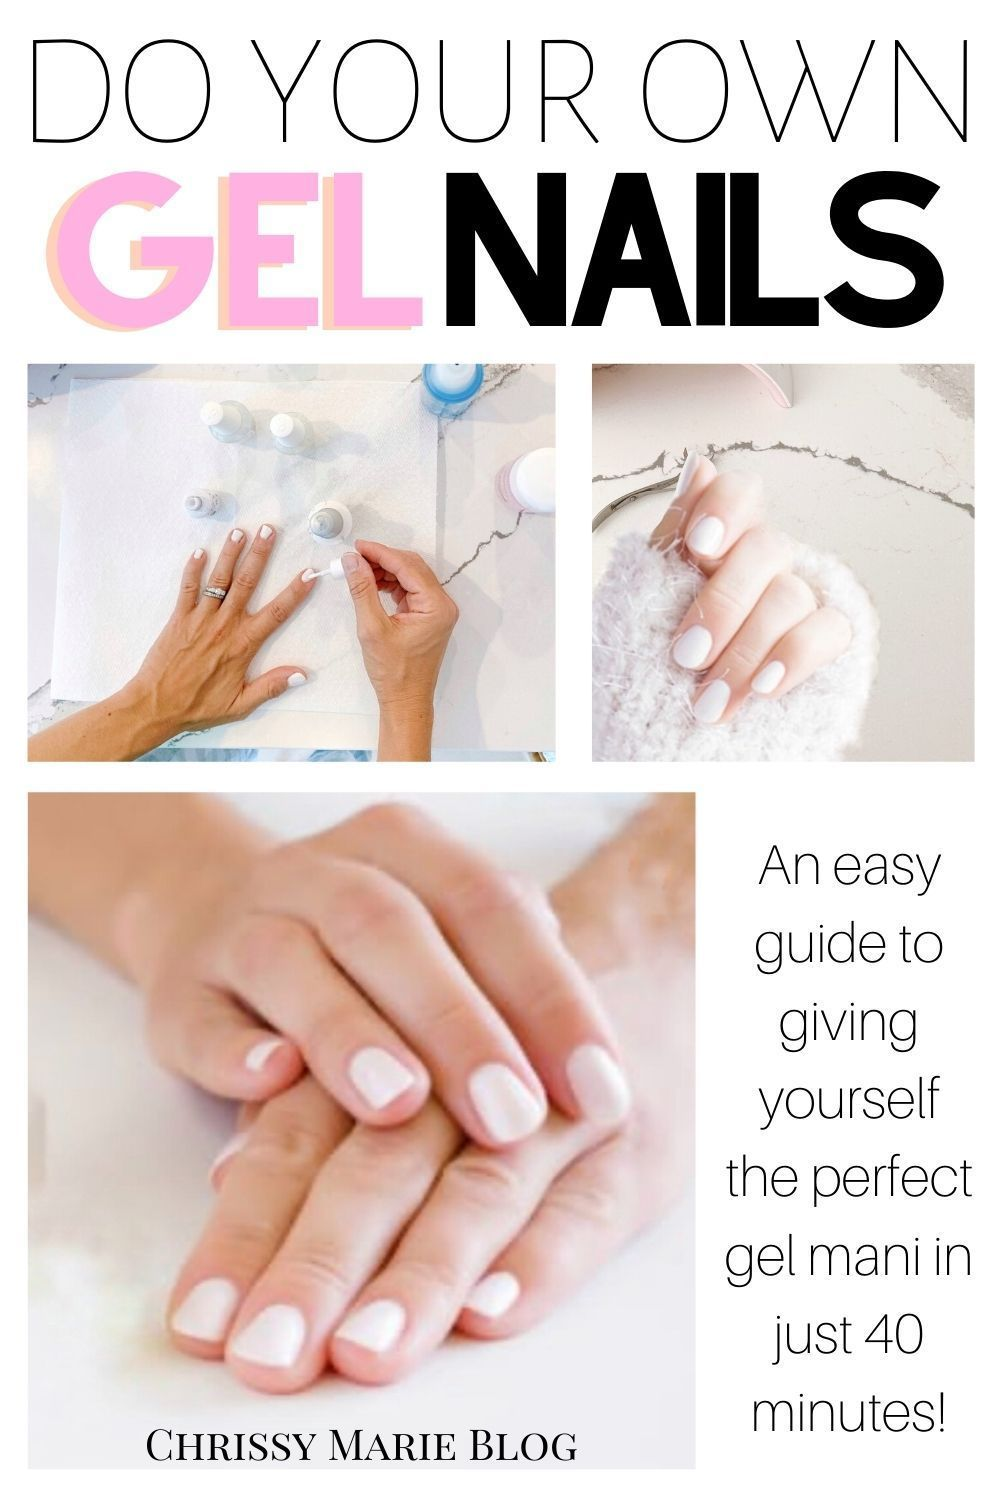 Gel Nails At Home A Tutorial For Beginners In 2020 Gel Nail Tutorial Gel Nails Diy Gel Nail Kit